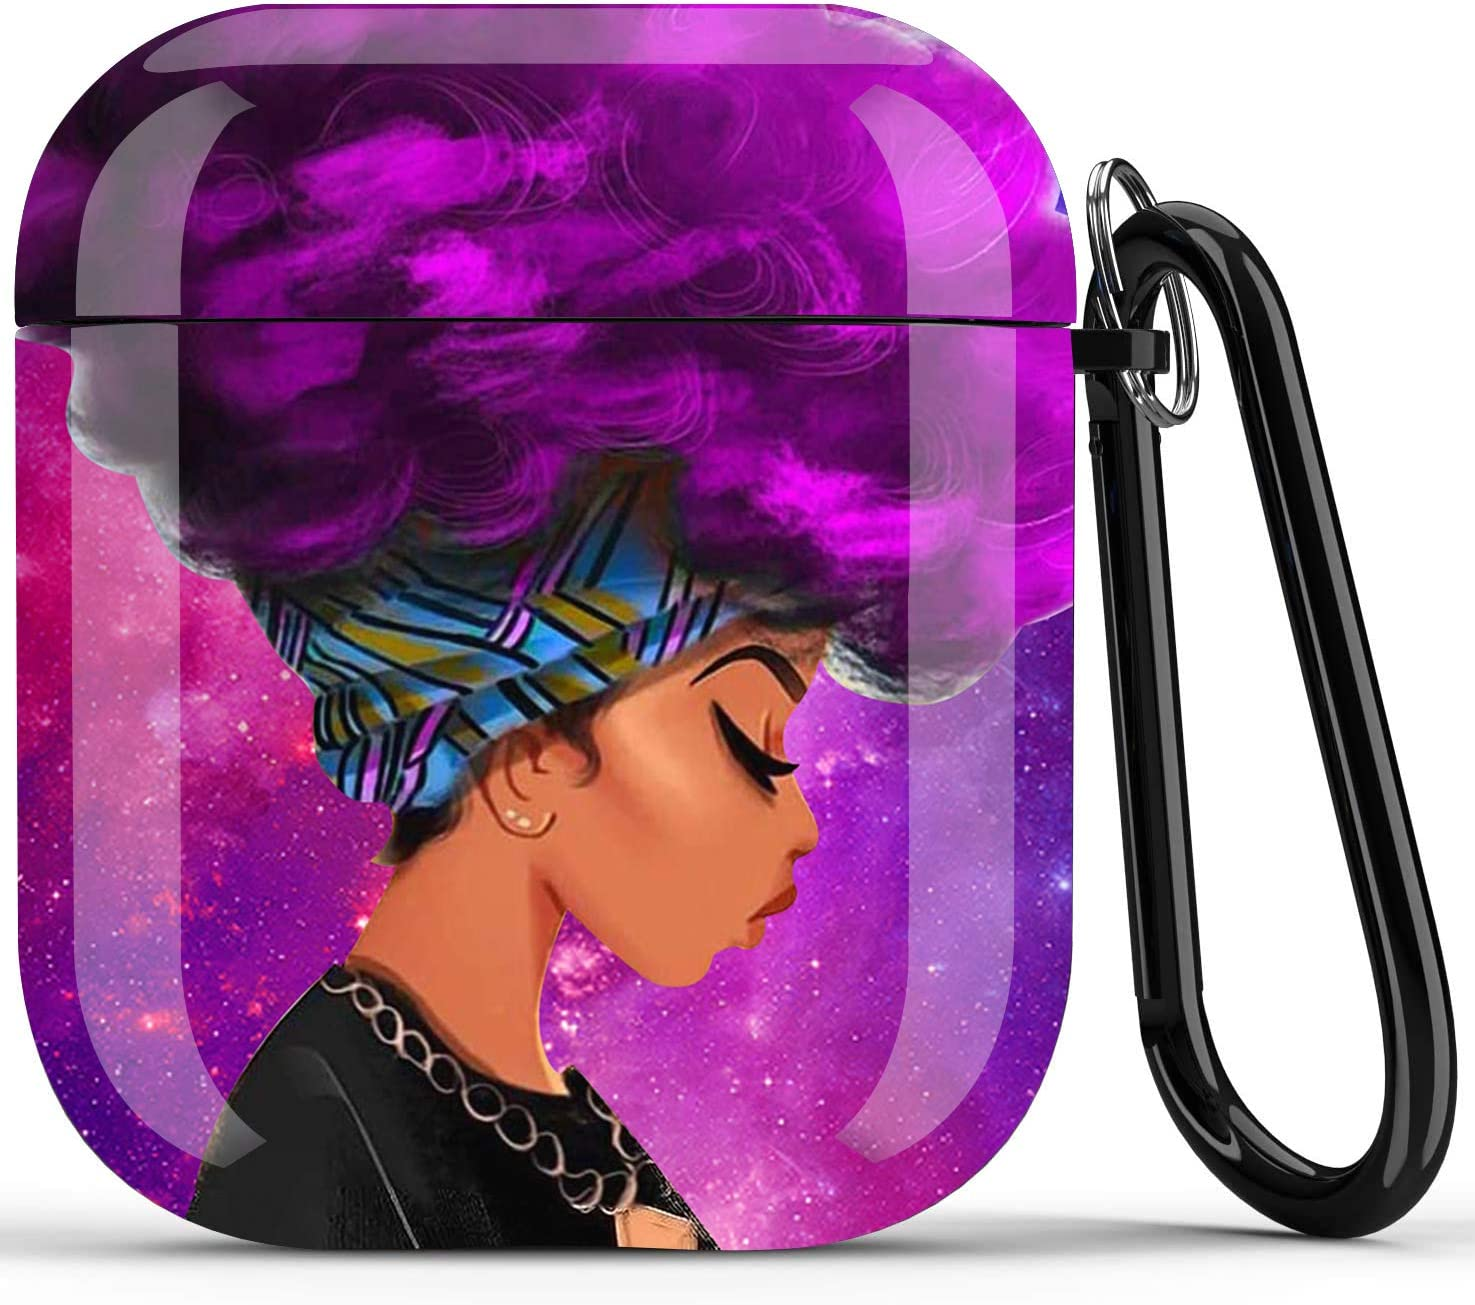 Black Girl Airpods Case - Icepos African American Airpod Skin Protective Hard Case Cover Portable & Shockproof Women Girls with Keychain for Apple Airpods 2/1 Charging Case (Purple Hair Girl)